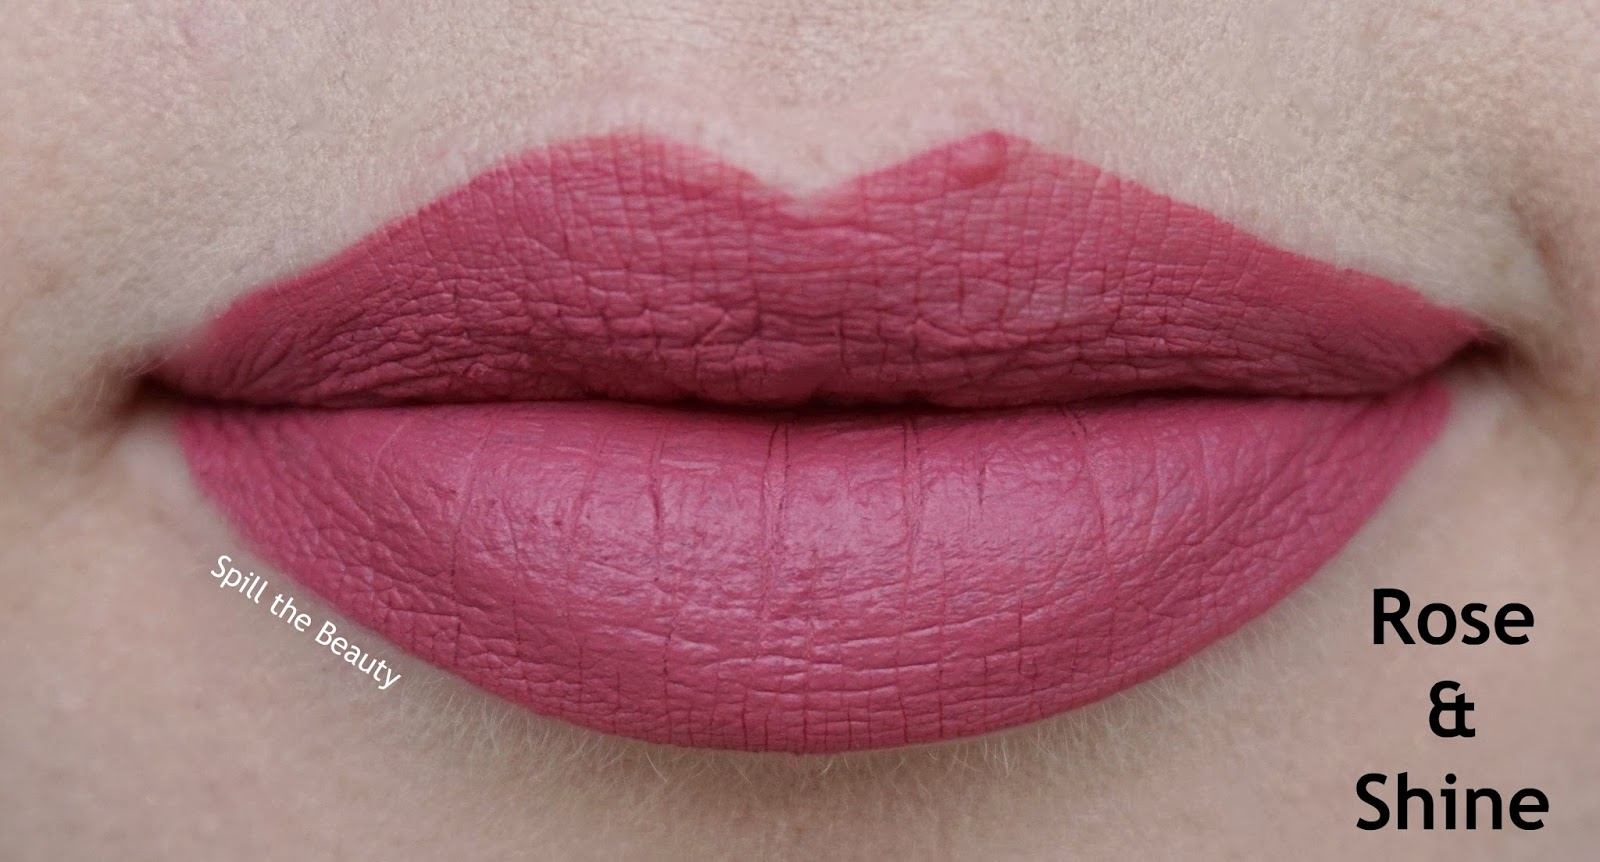 immel london stay matte liquid lip color review swatches 210 rose & shine